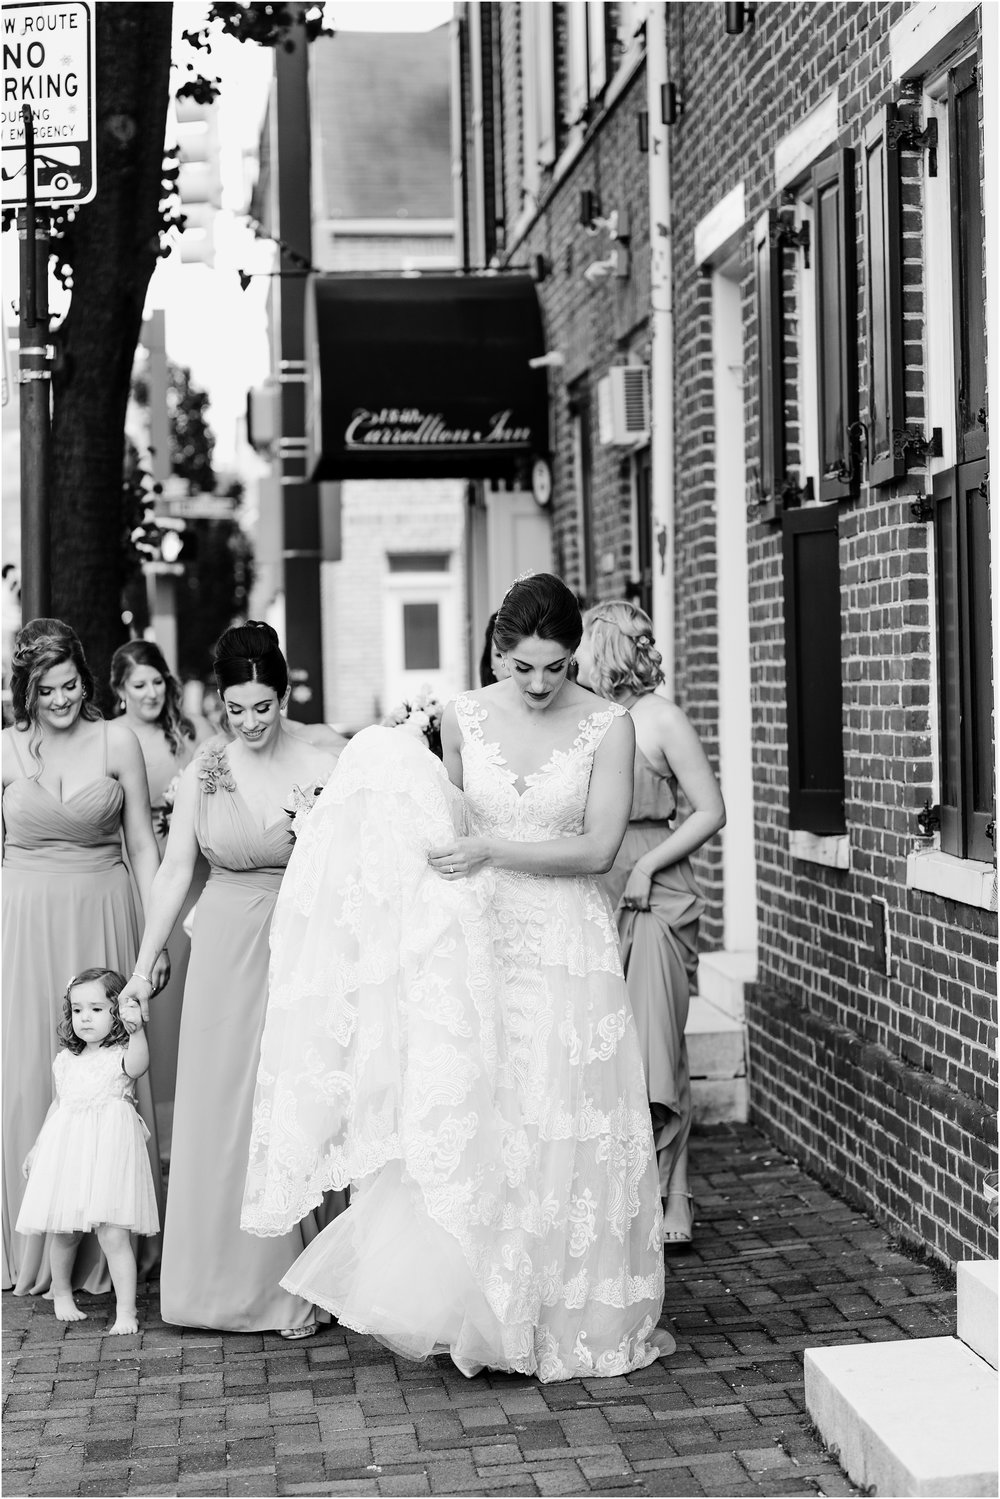 hannah leigh photography 1840s plaza wedding baltimore md_0055.jpg